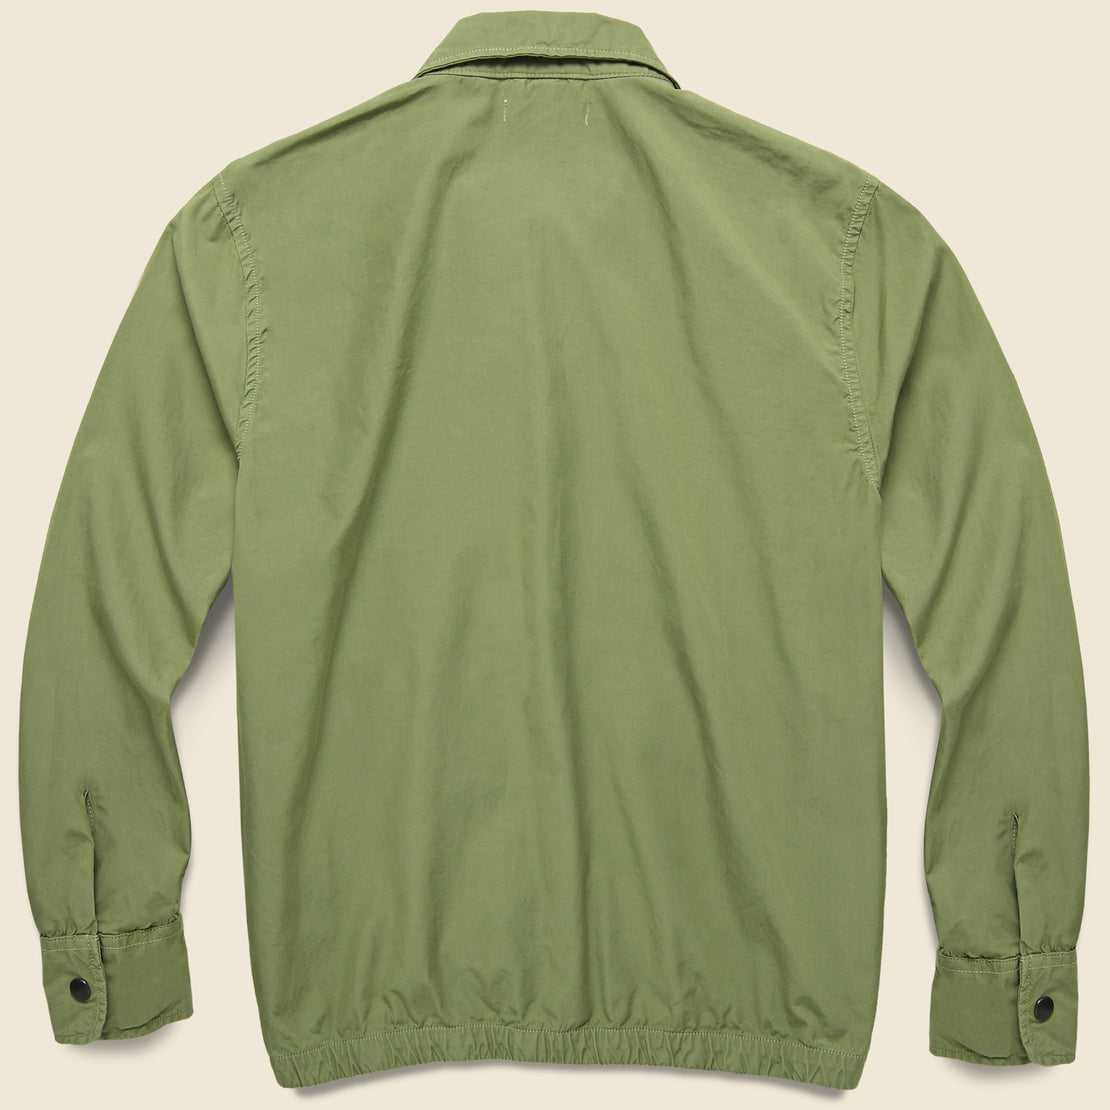 Poplin Service Jacket - Fatigue